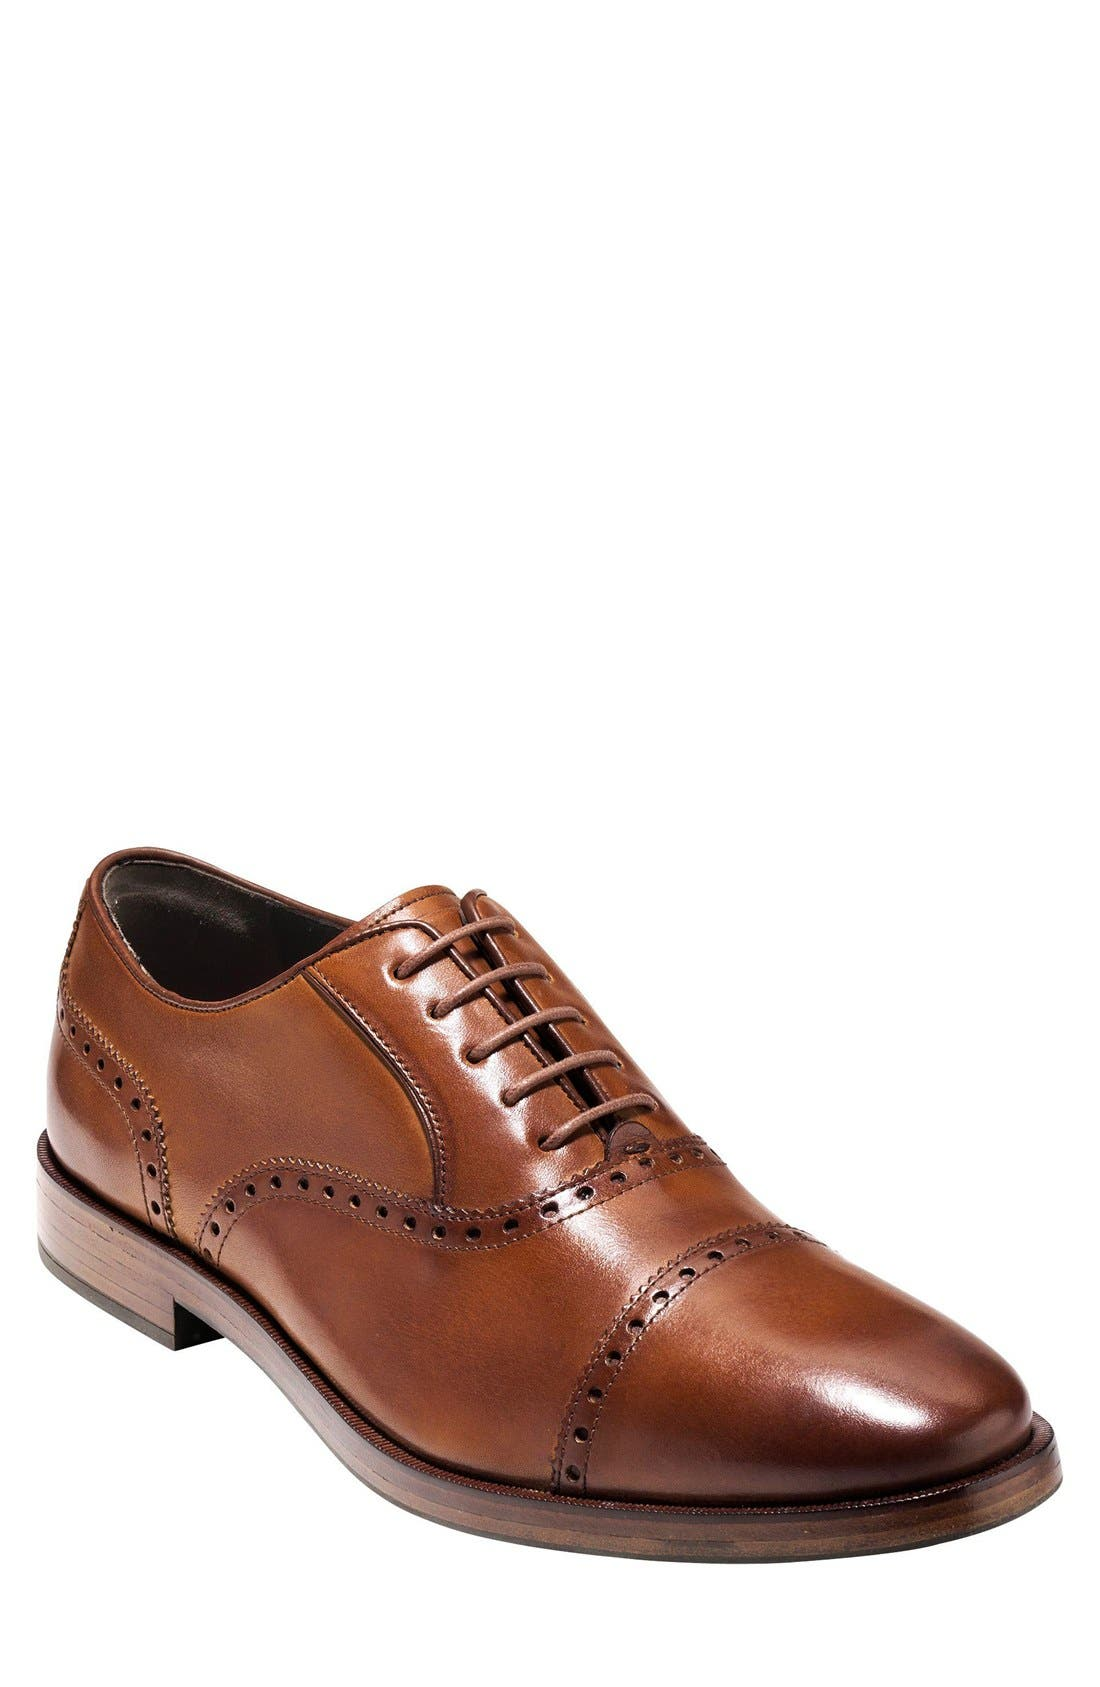 COLE HAAN, 'Hamilton' Cap Toe Oxford, Main thumbnail 1, color, BRITISH TAN LEATHER